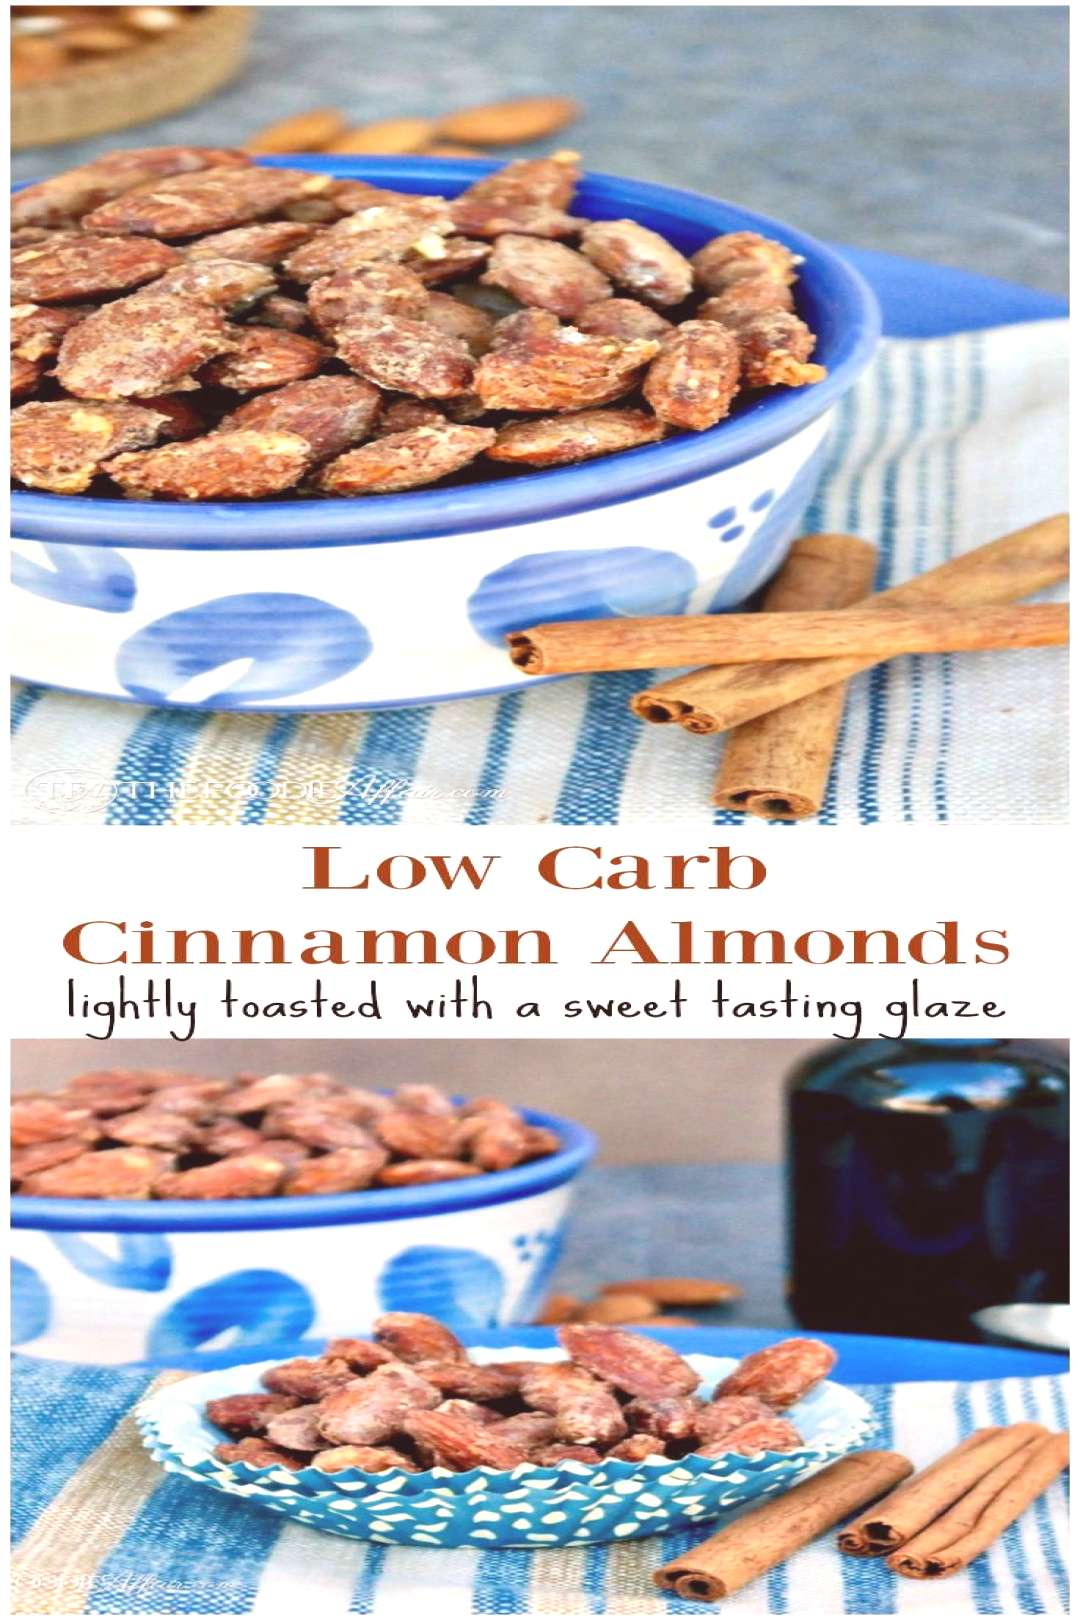 Low Carb Cinnamon Almonds lightly toasted with a sweet tasting glaze. This snack is a great afterno